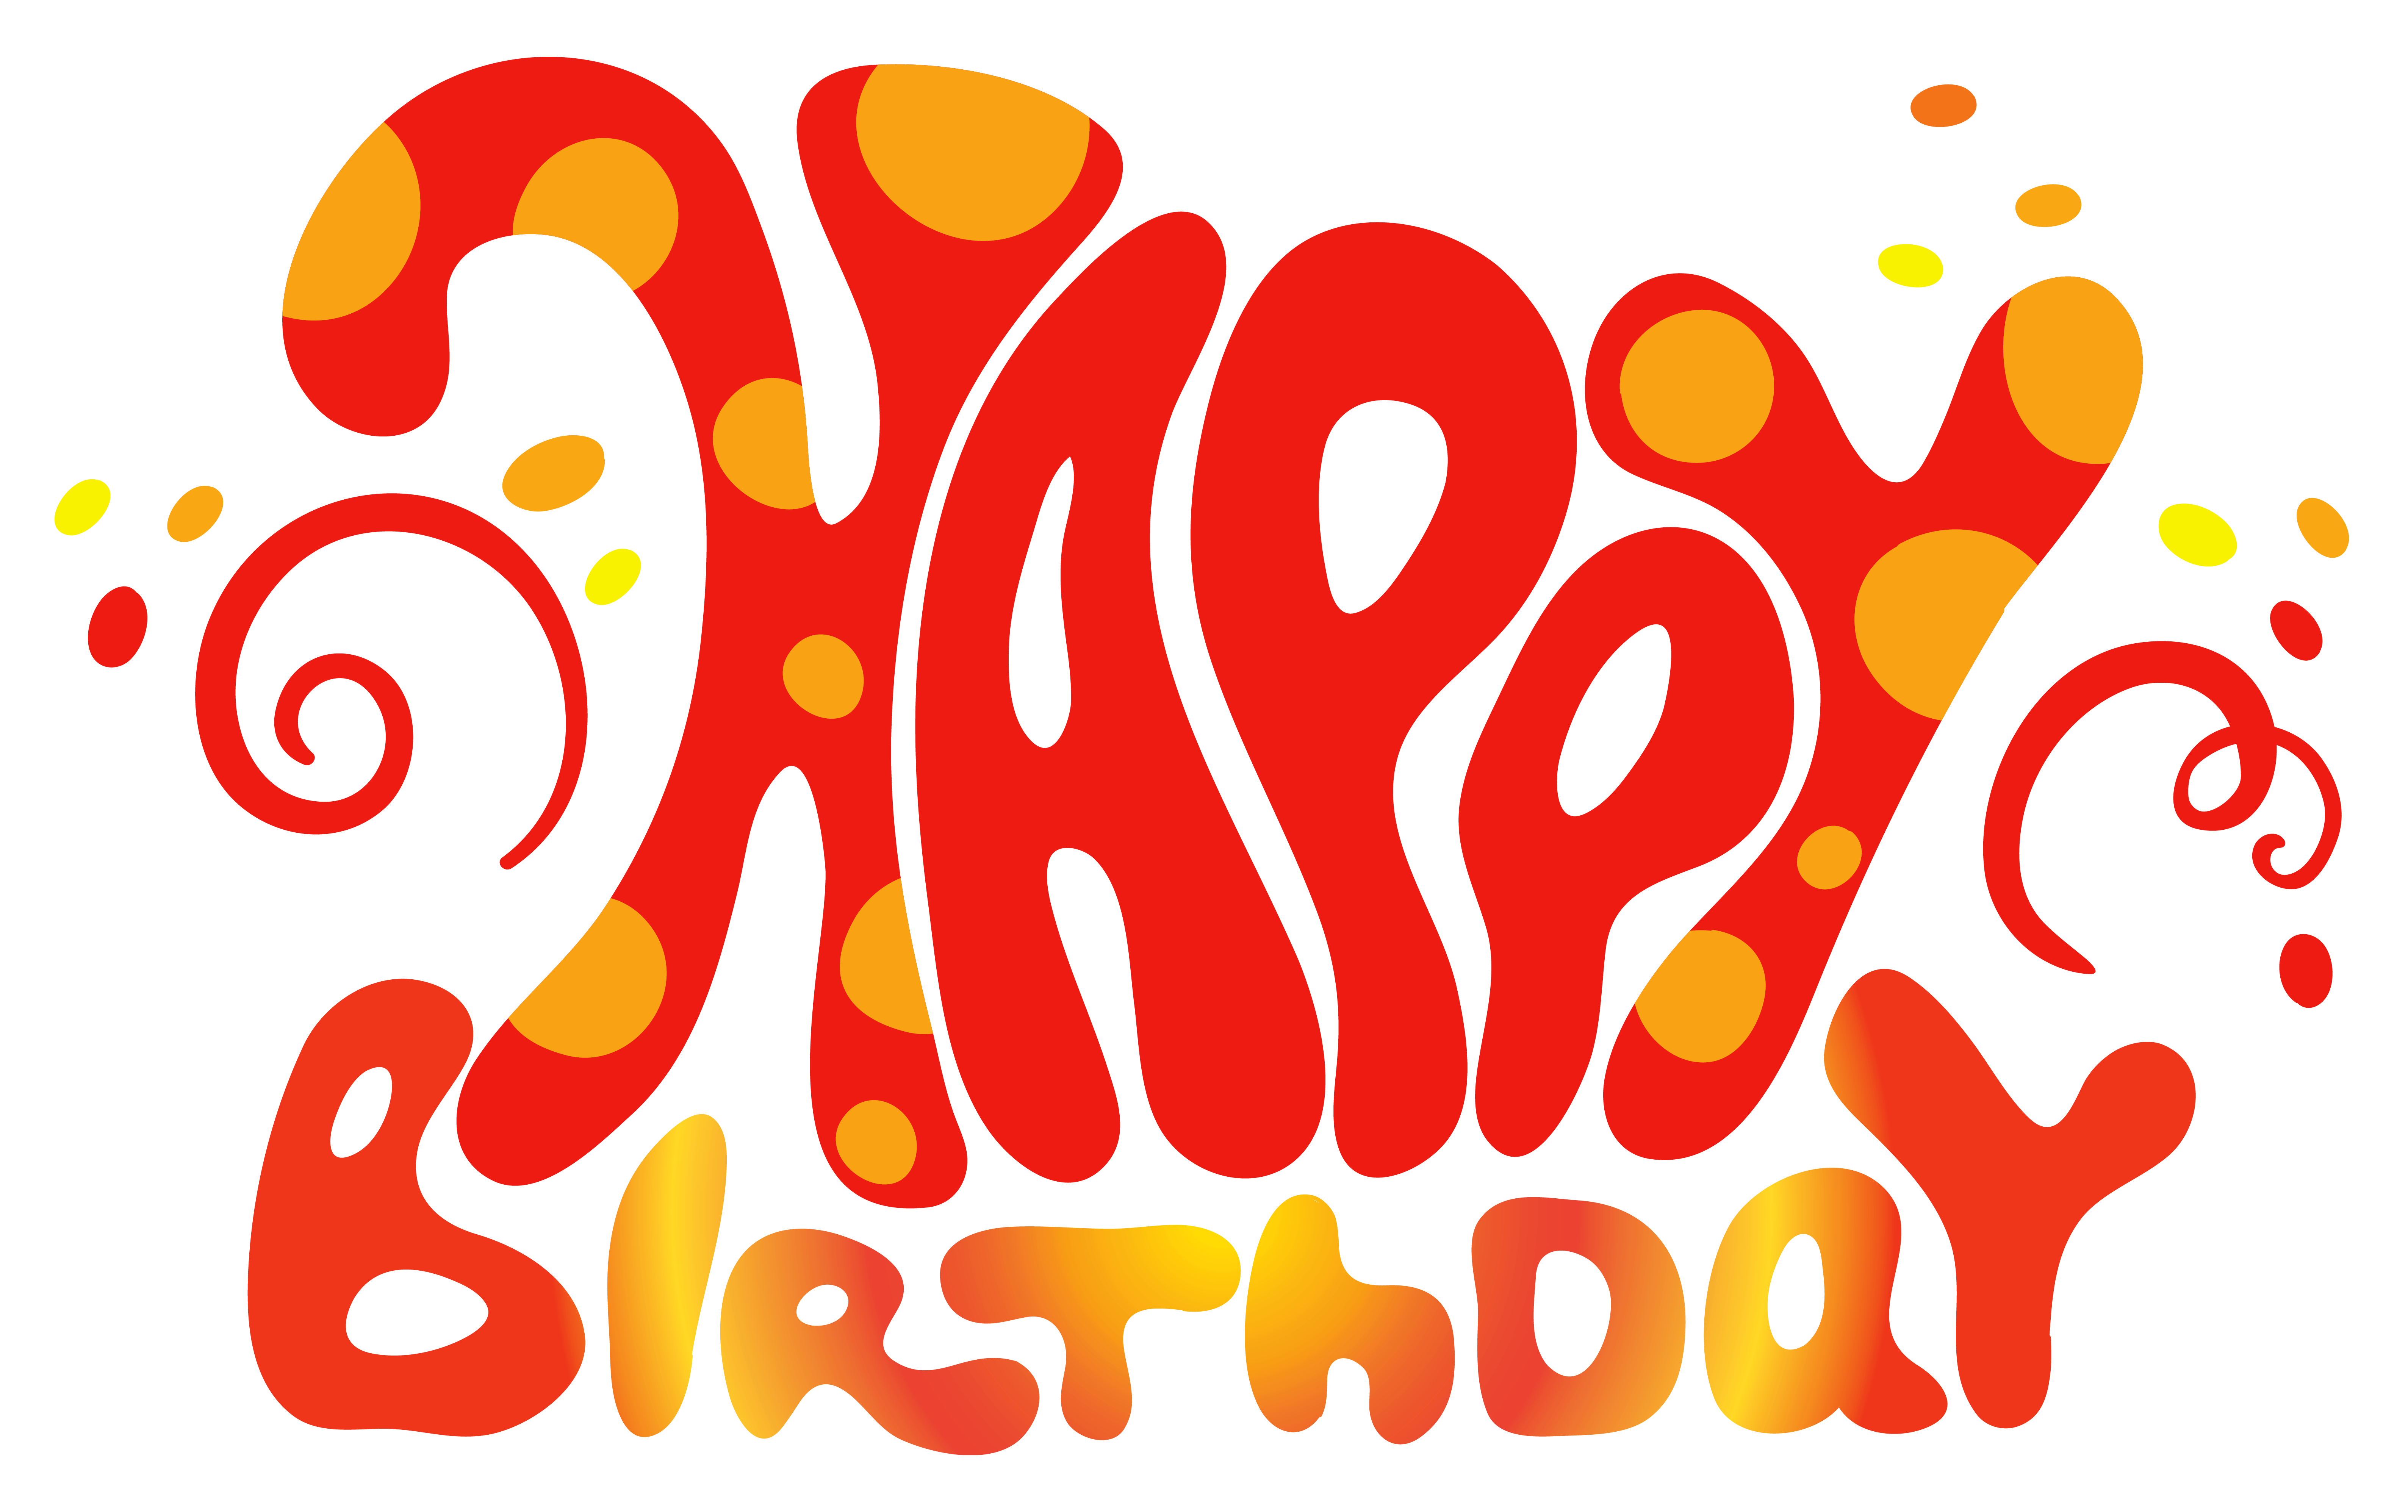 Red cute text png. Stamp clipart happy birthday